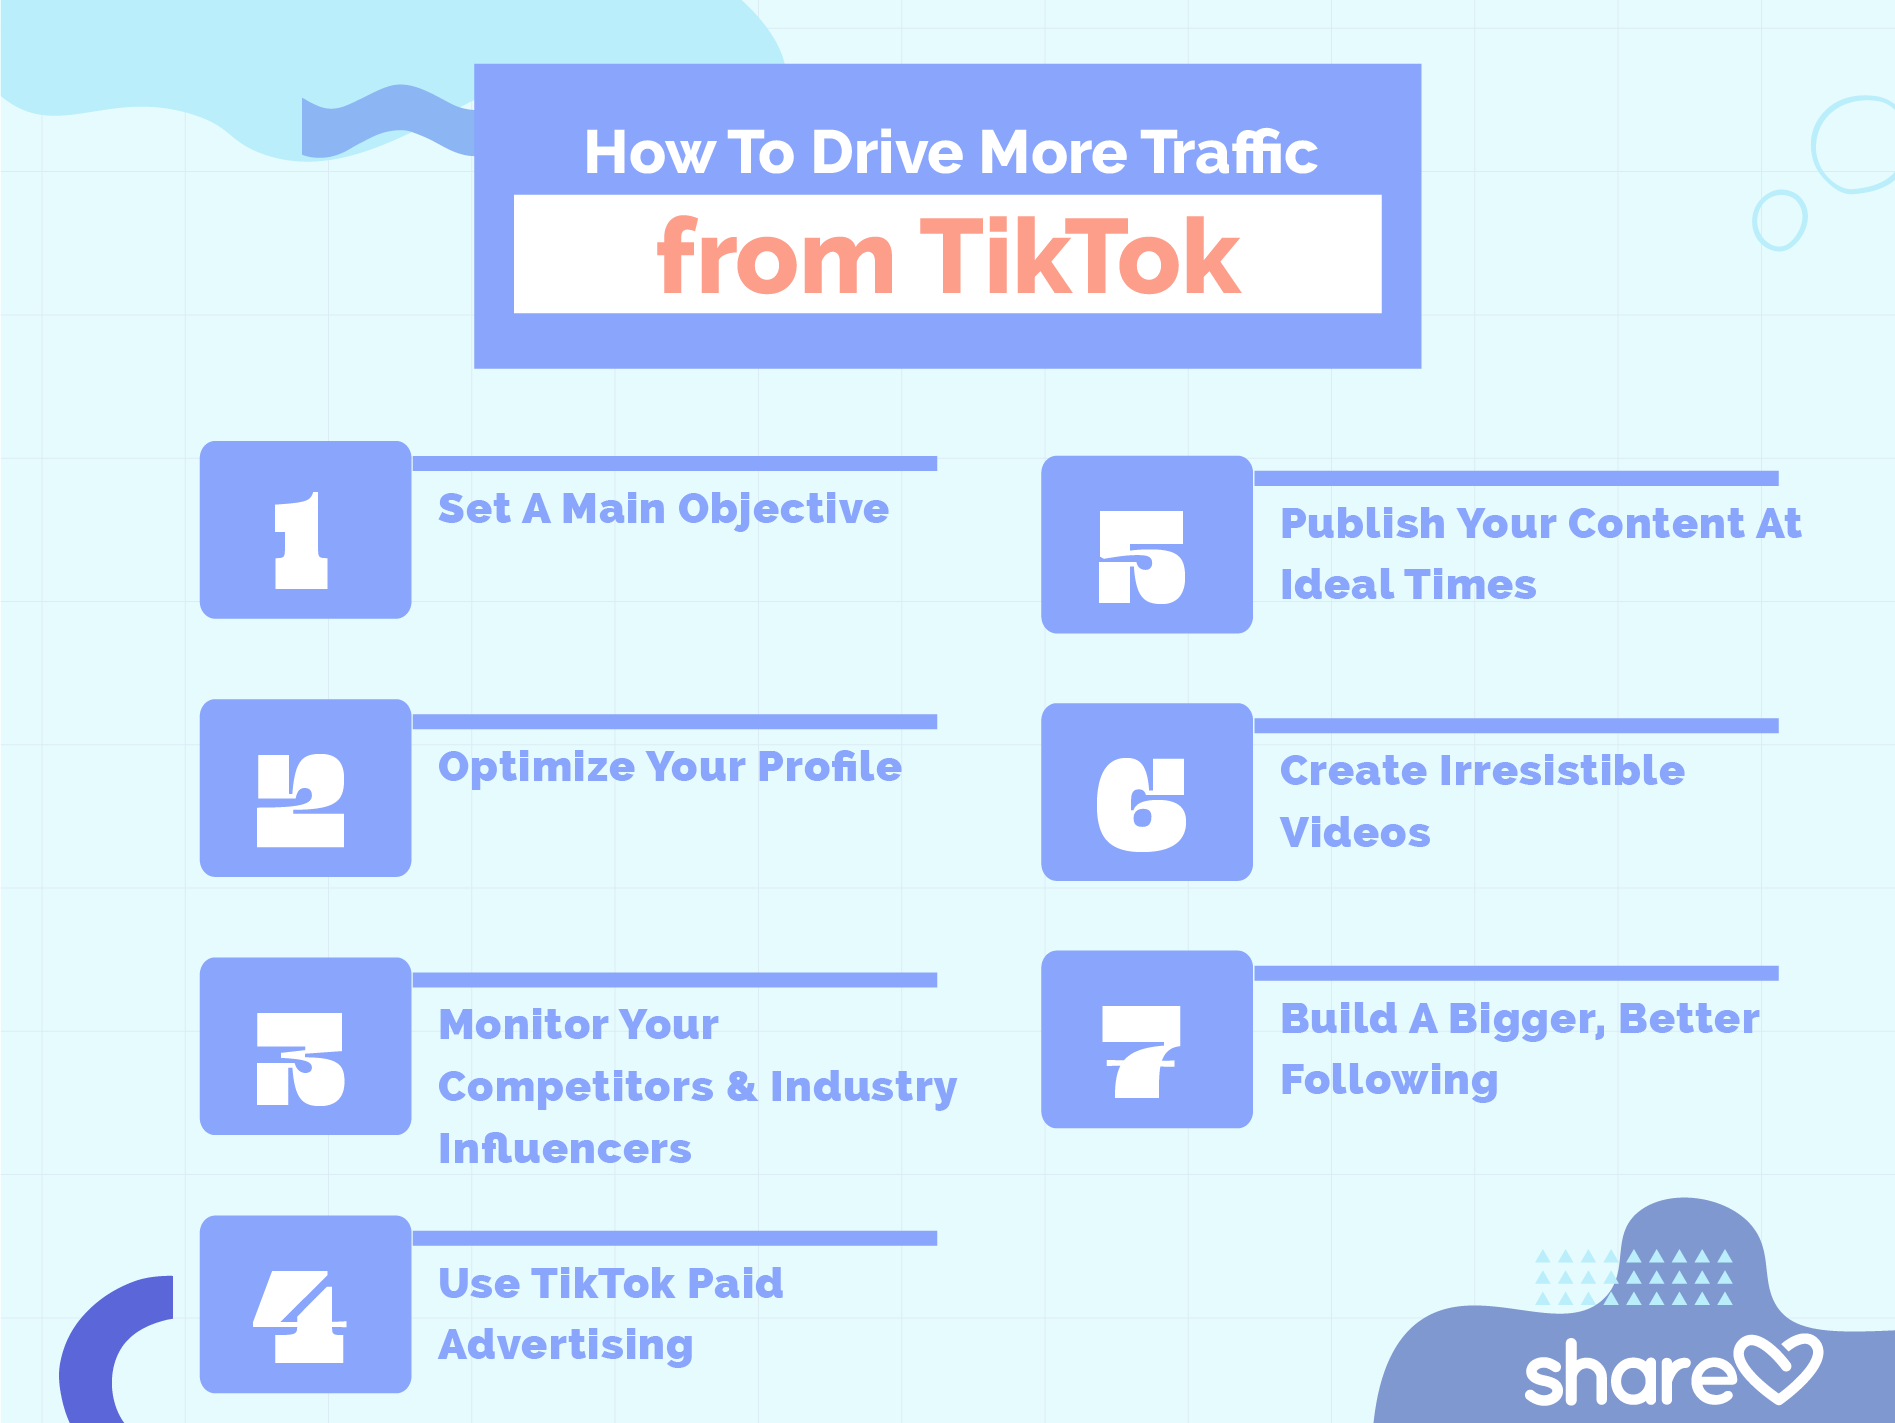 How To Drive More Traffic From TikTok